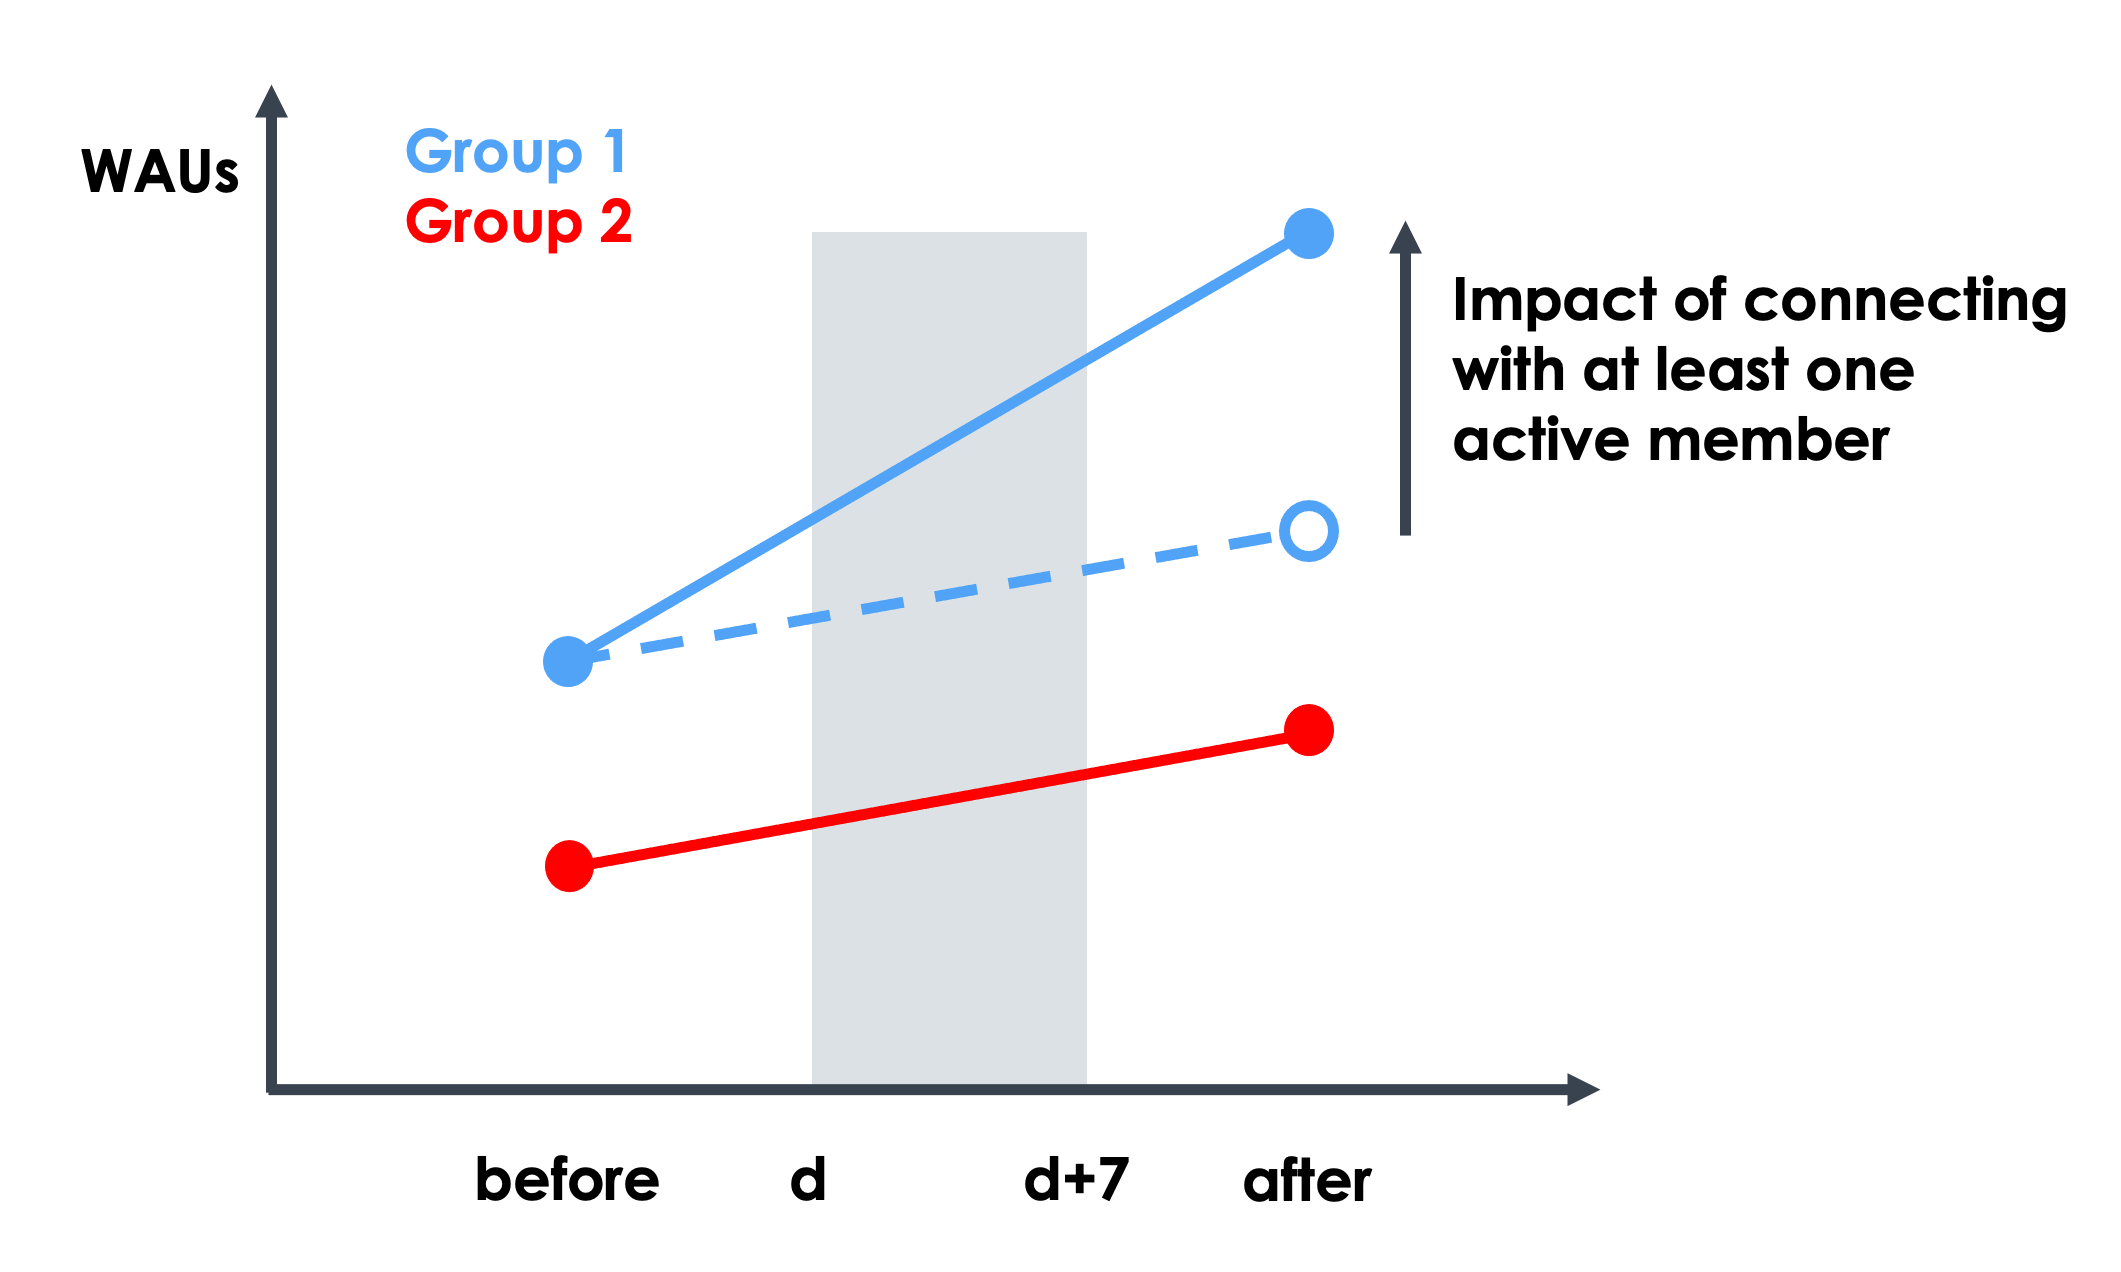 graph-showing-process-of-estimating-impact-of-an-increase-in-the-value-of-the-feature-number-of-connections-who-are-active-on-the-waus-metric-from-historical-data